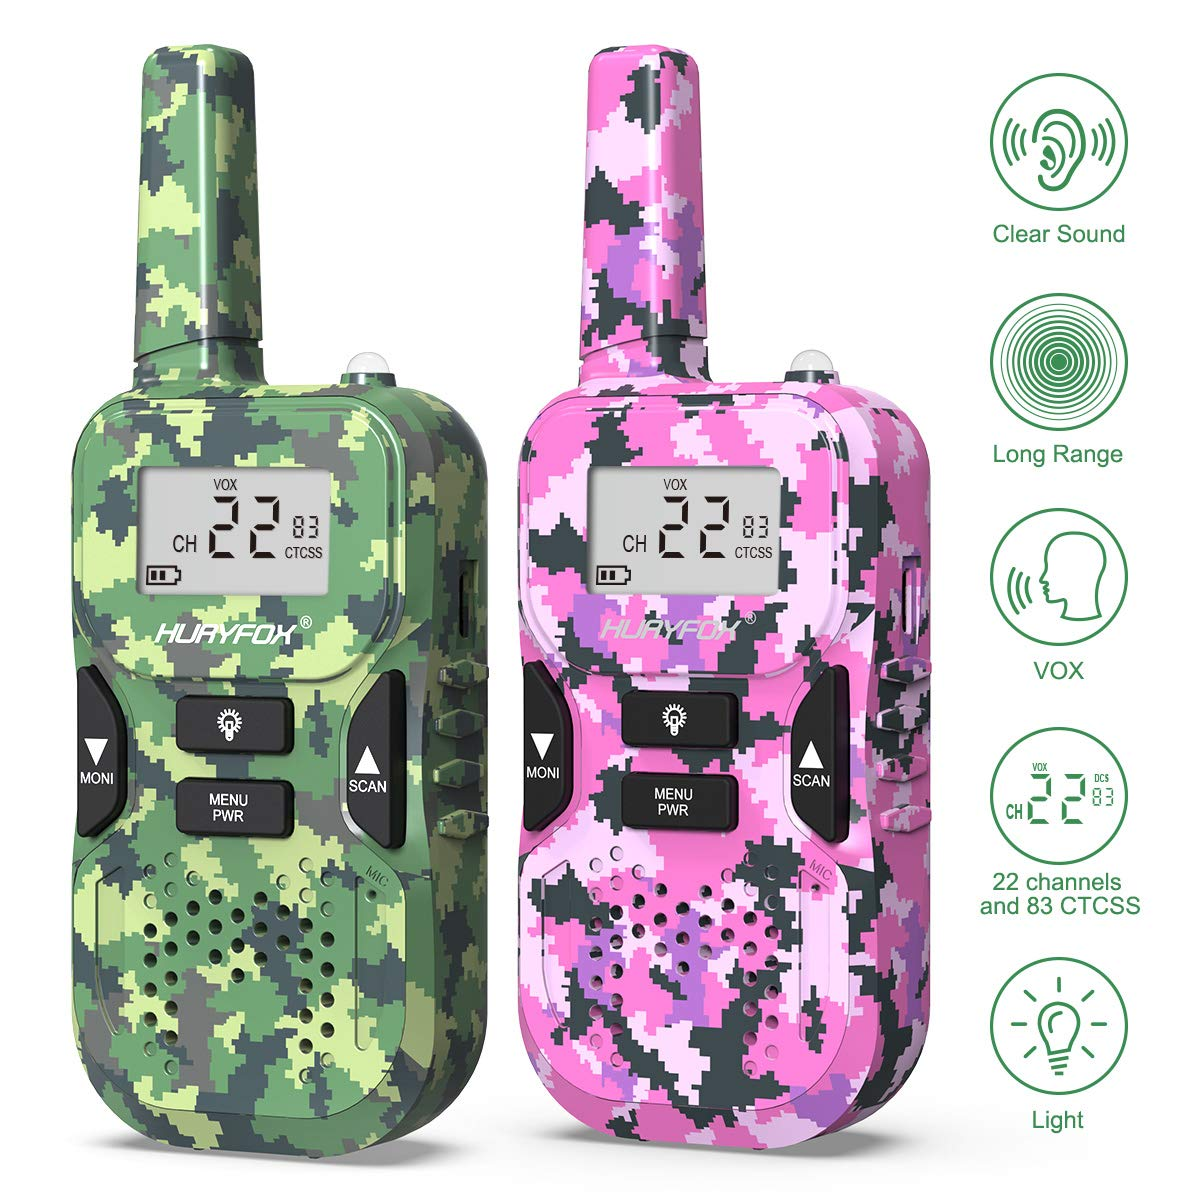 Walkie Talkie for Kids- Two Way Radio Toys with 22 Channels 83 Privacy Codes-Long Range Walky Talky with VOX Function for Camping,Hiking, Outdoor Adventures (2 Pack,Camo&Pink)